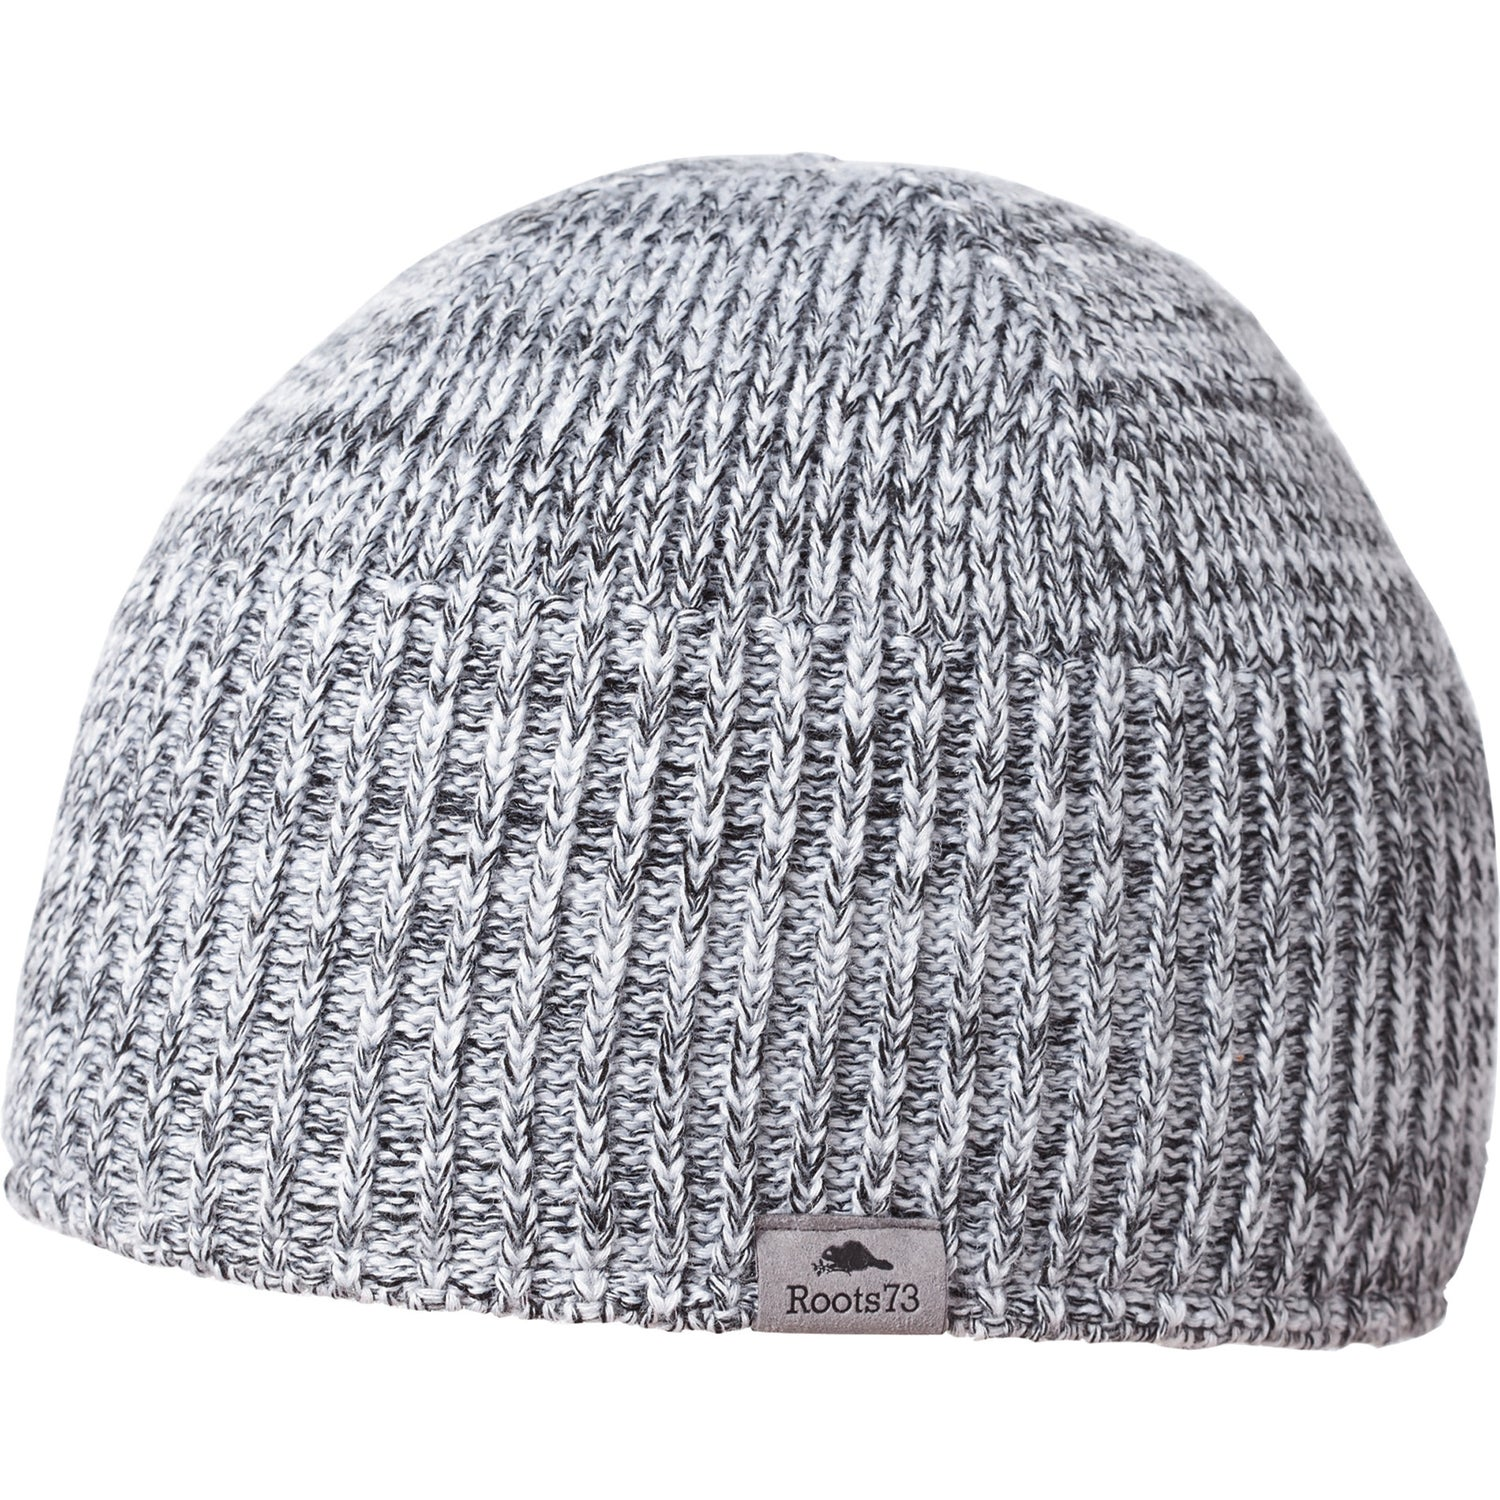 Fenelon Roots73 Beanie by TRIMARK